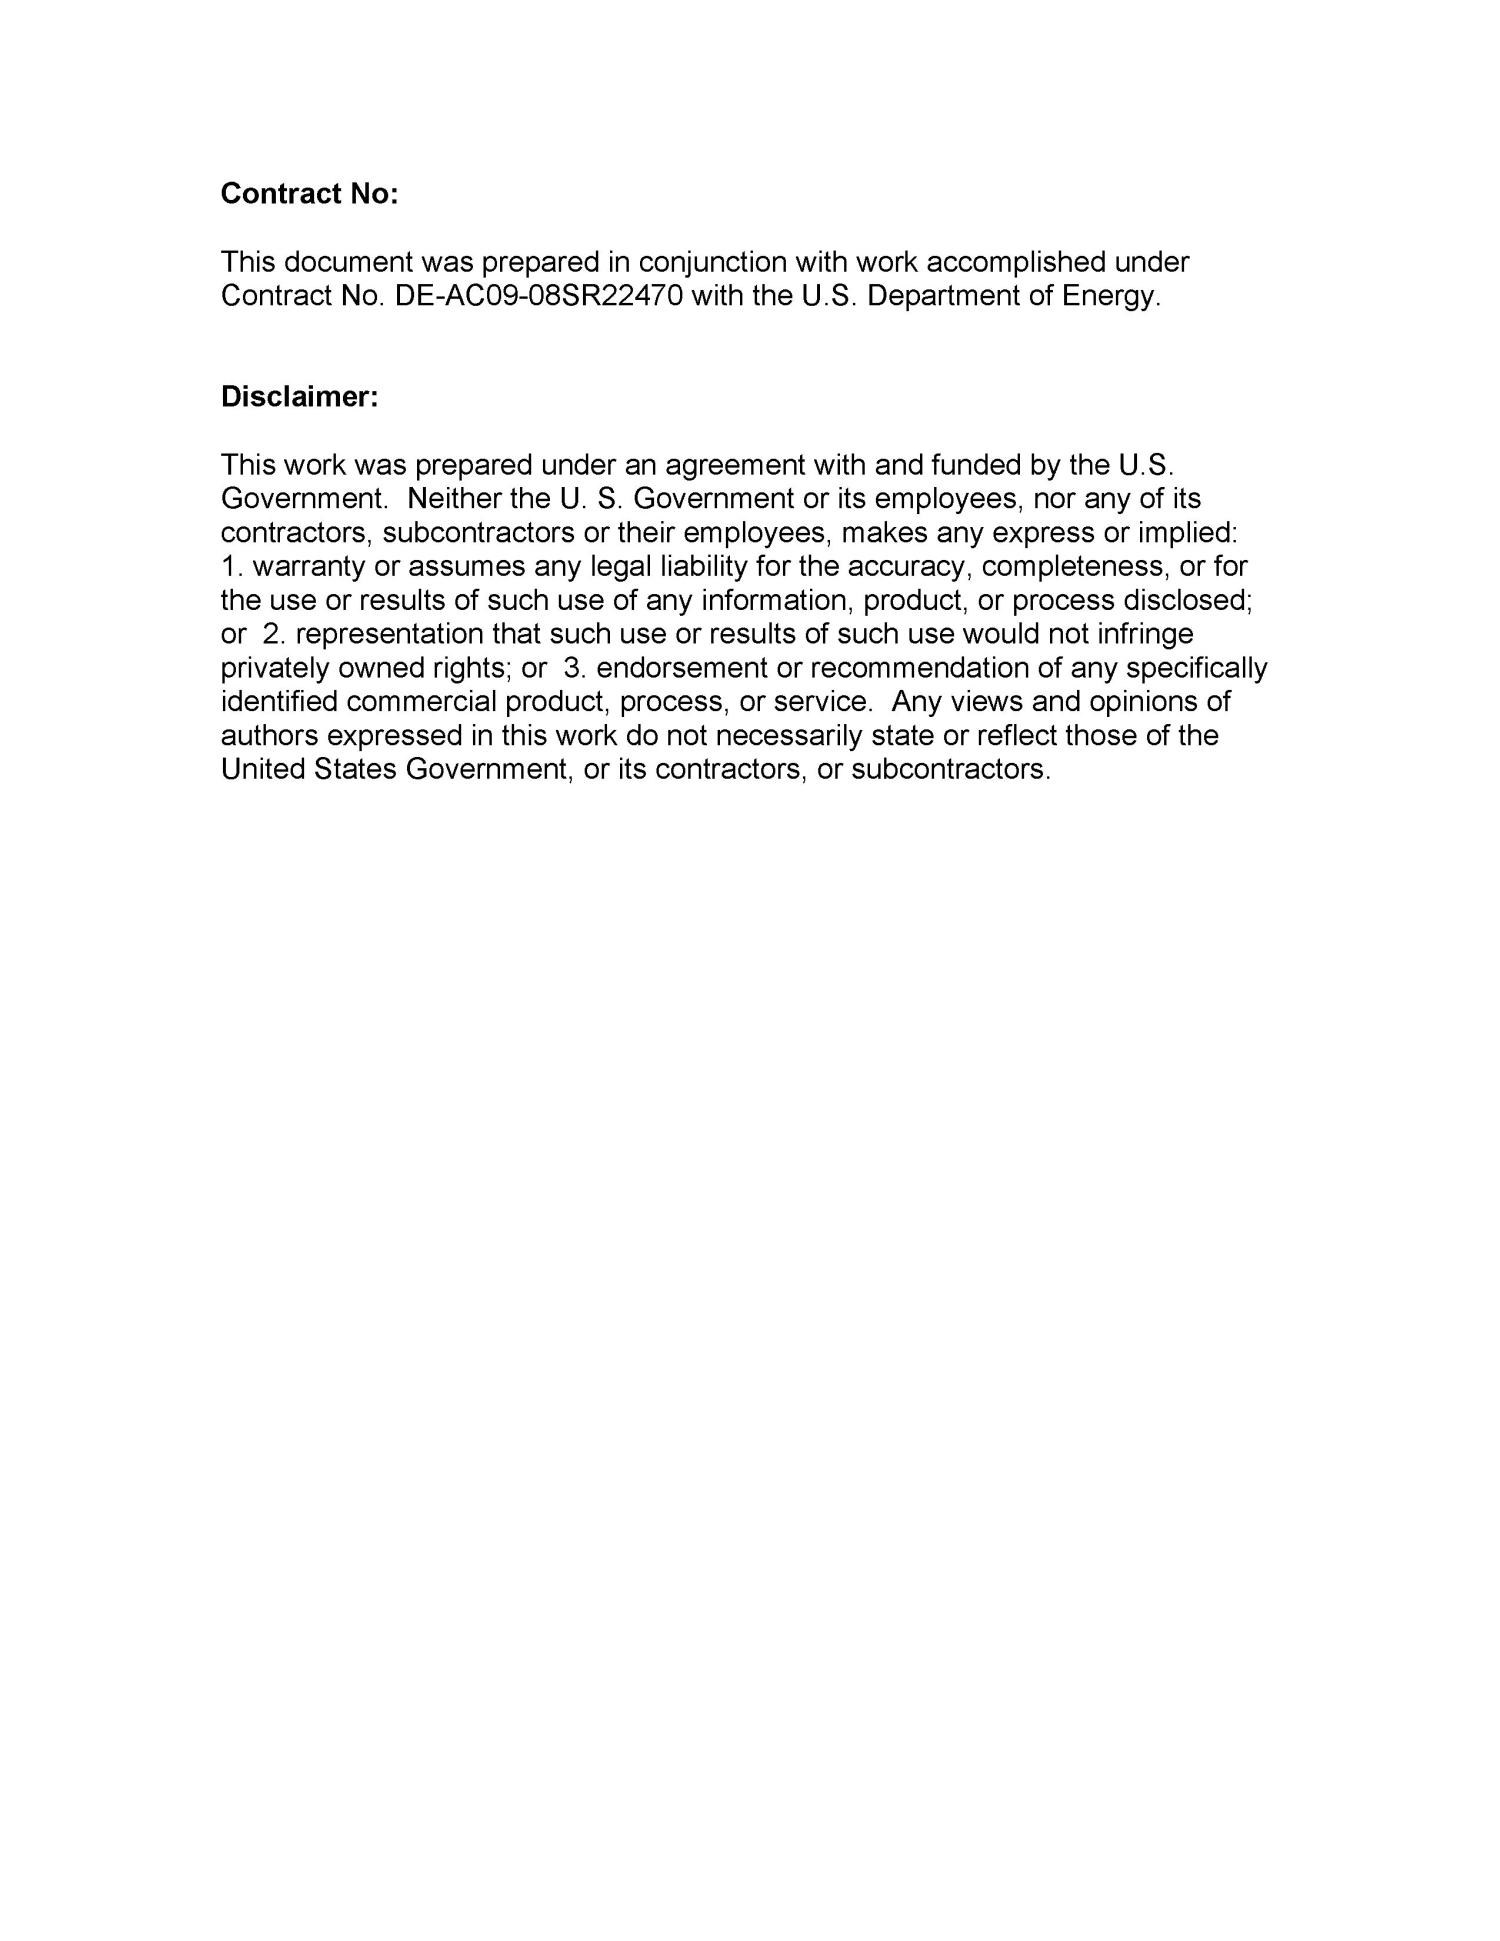 UNITED STATES DEPARTMENT OF ENERGY OFFICE OF ENVIRONMENTAL MANAGEMENT WASTE PROCESSING ANNUAL TECHNOLOGY DEVELOPMENT REPORT 2008                                                                                                      [Sequence #]: 1 of 124